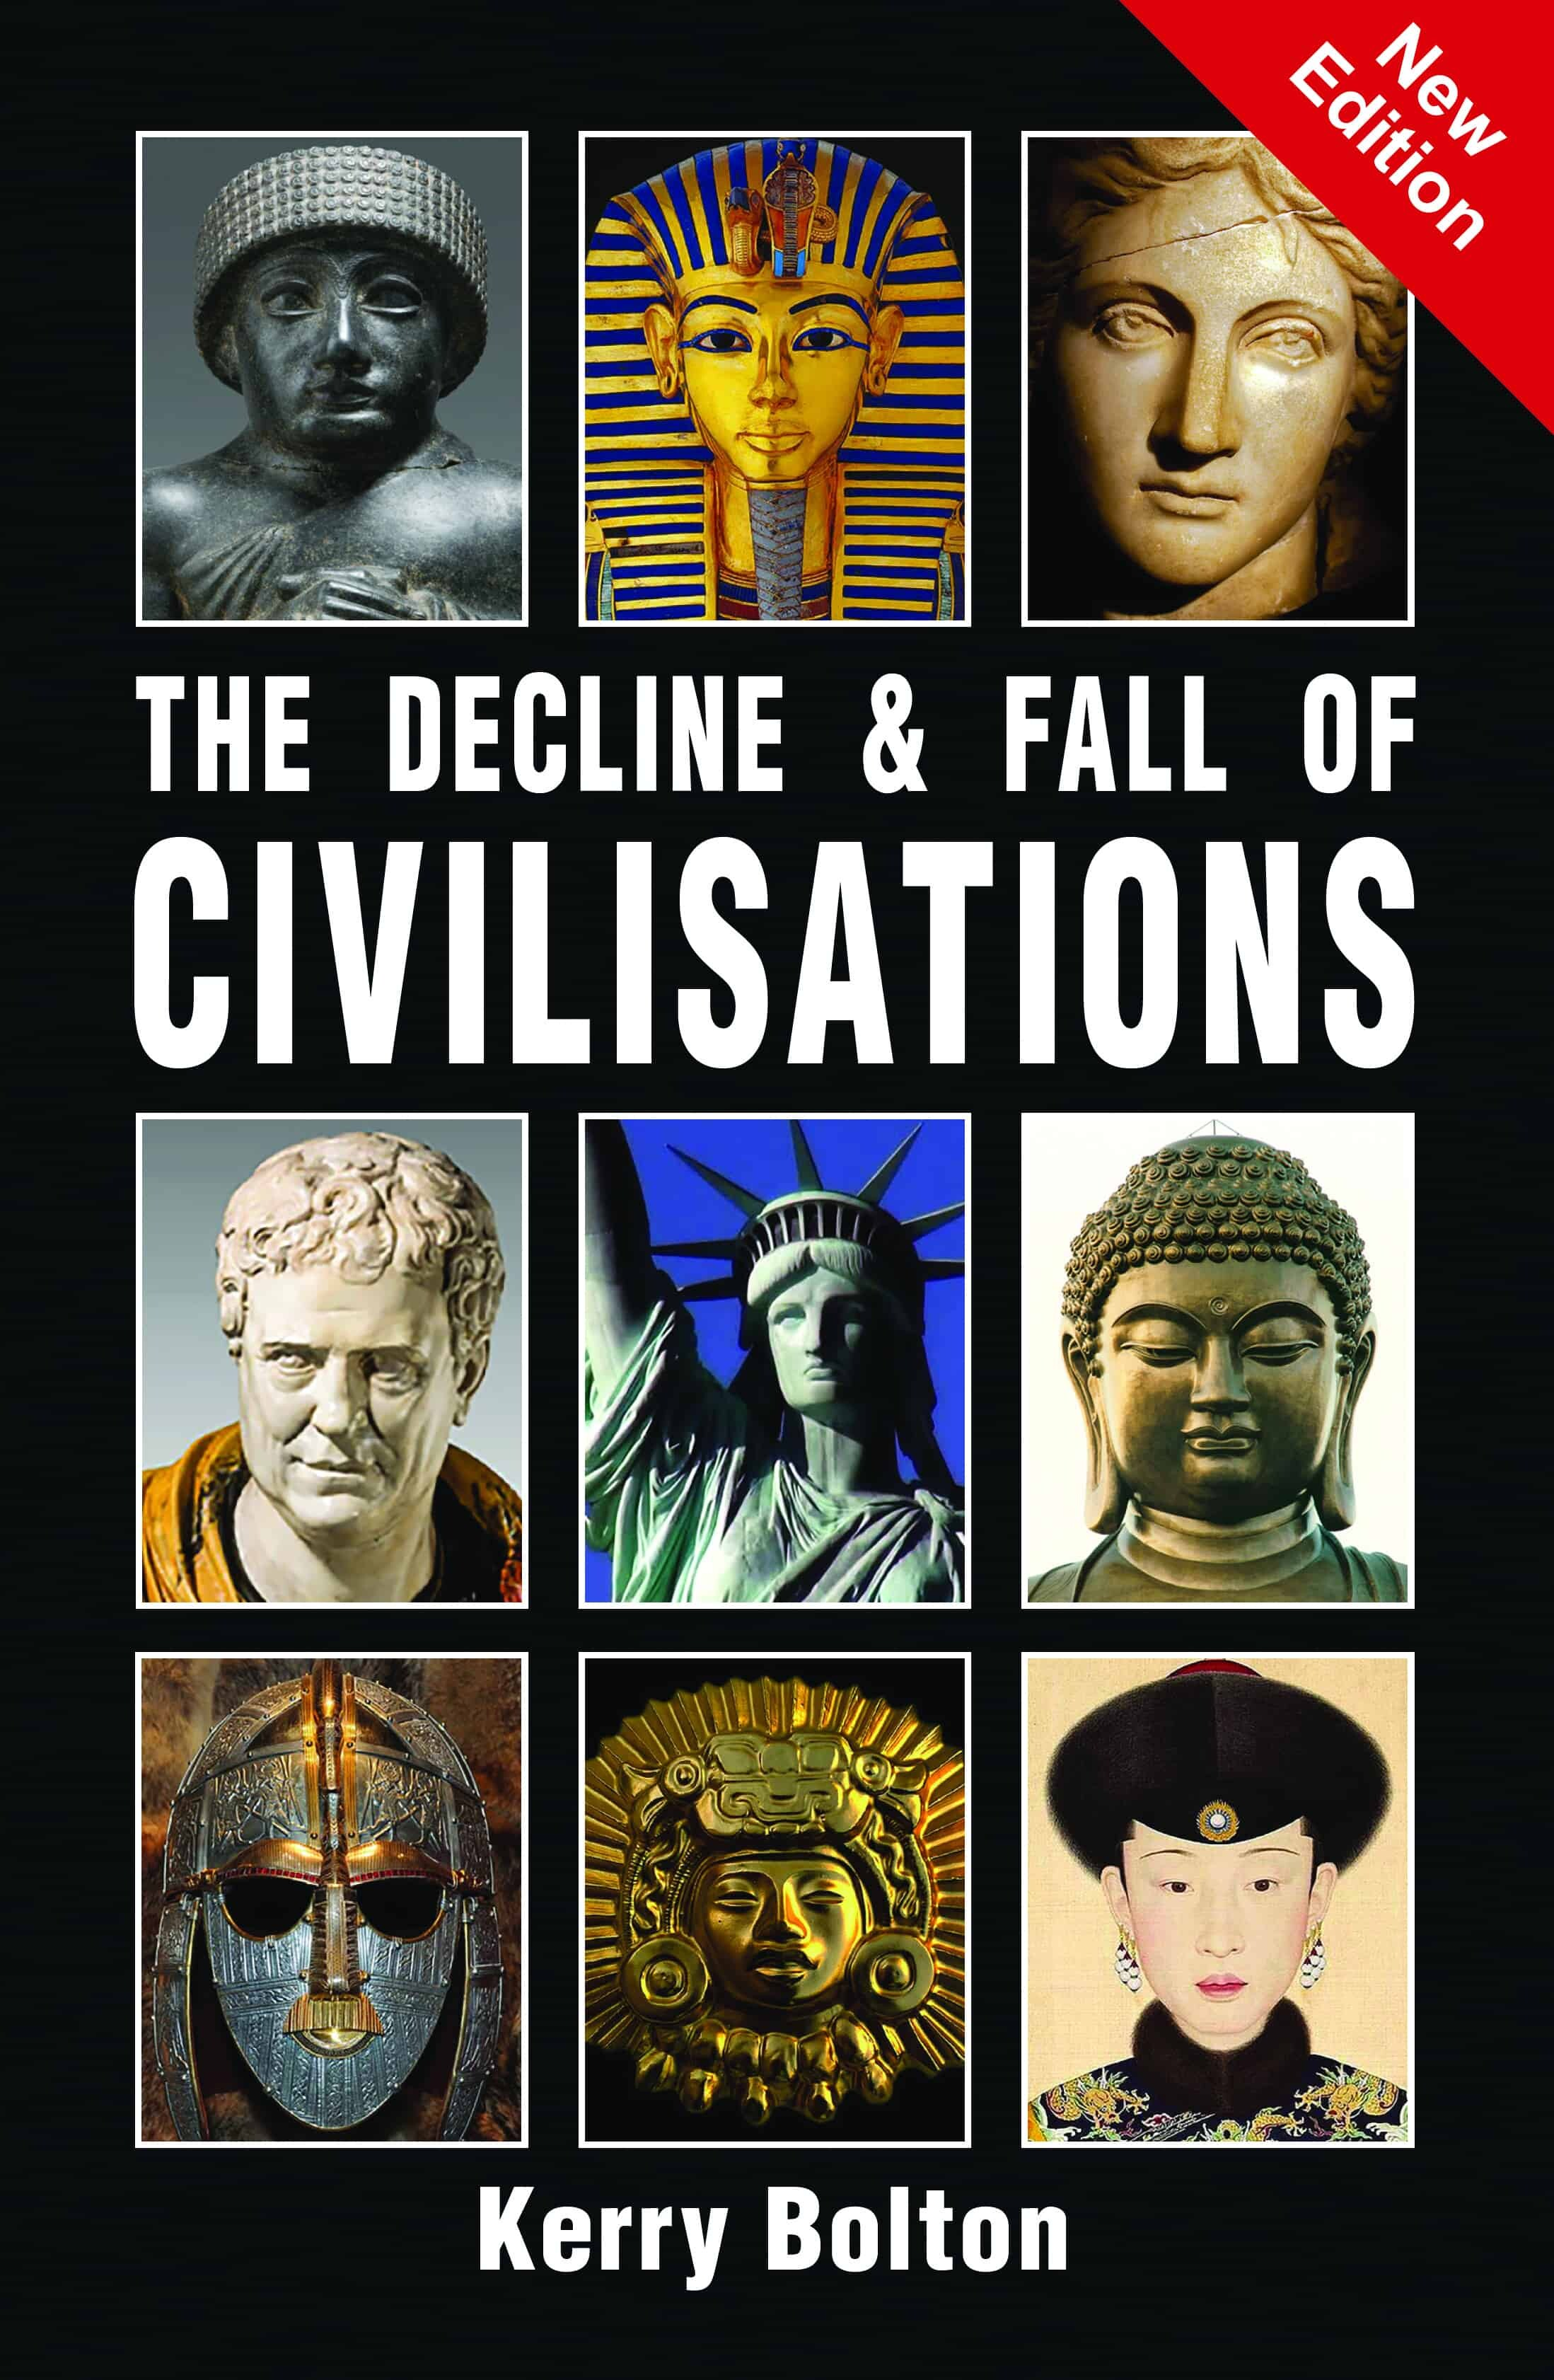 The Decline and Fall of Civilisations